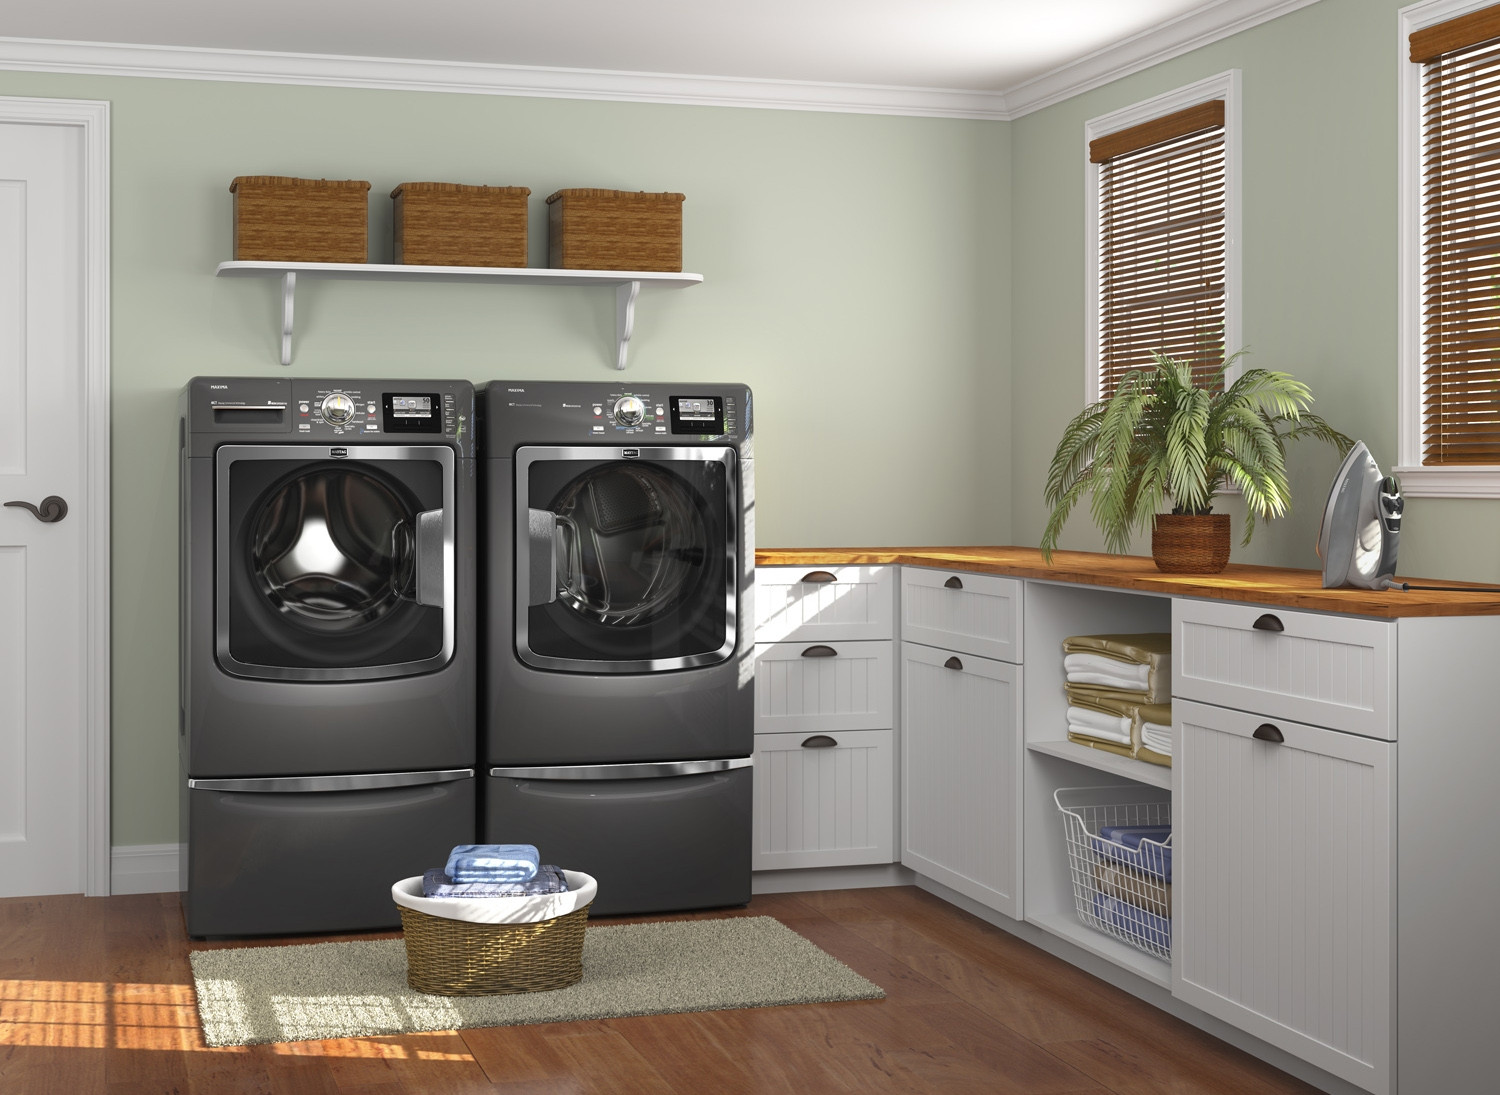 Best ideas about Laundry Room Decor . Save or Pin 15 Tips to Creating a Laundry Room that's both Charming Now.